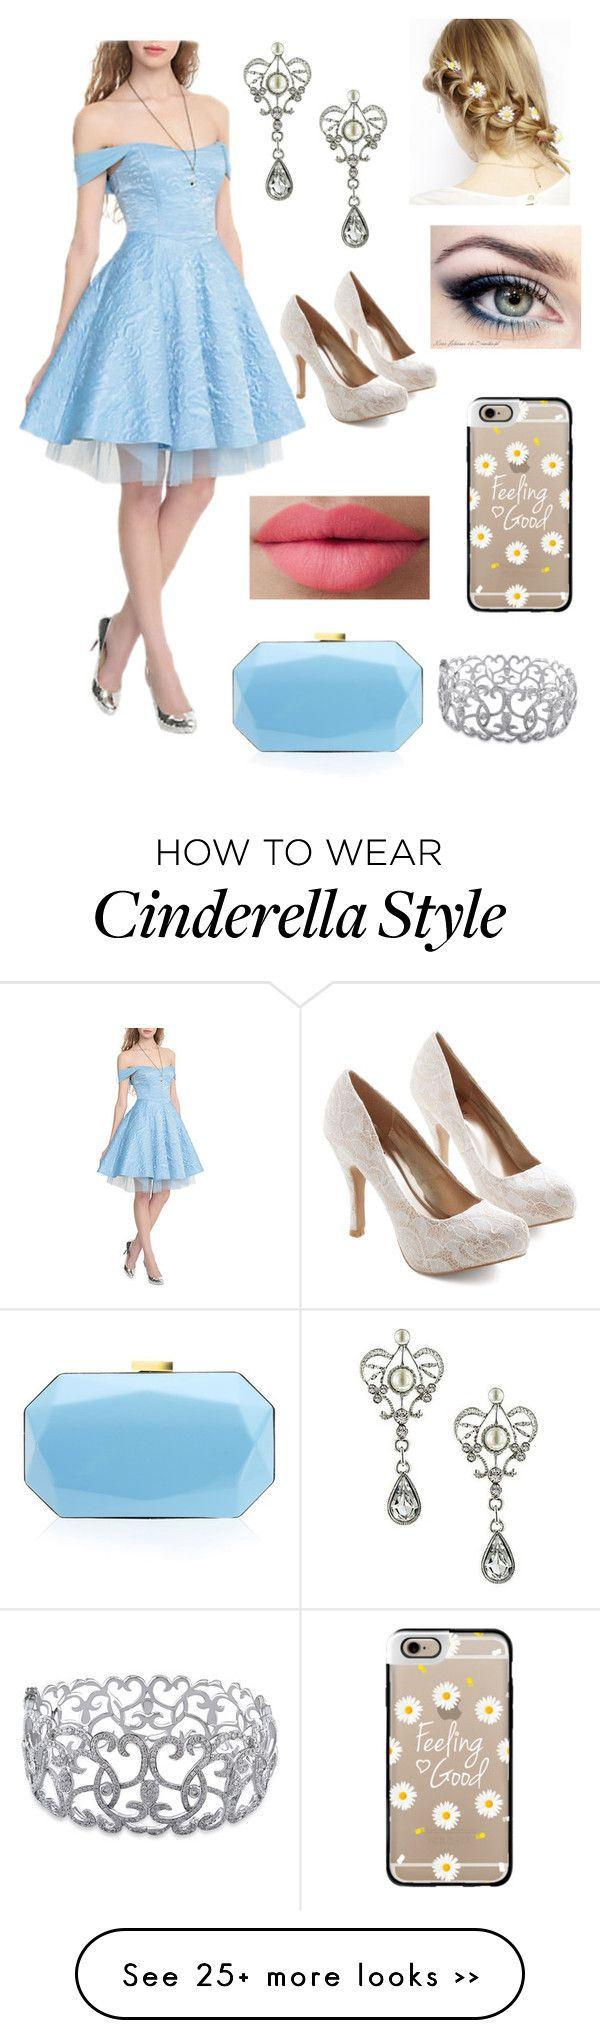 """Untitled #19"" by sofiazdesigner on Polyvore featuring Disney, ASOS, 1928, LORAC, Casetify, Lipsy and Ice"